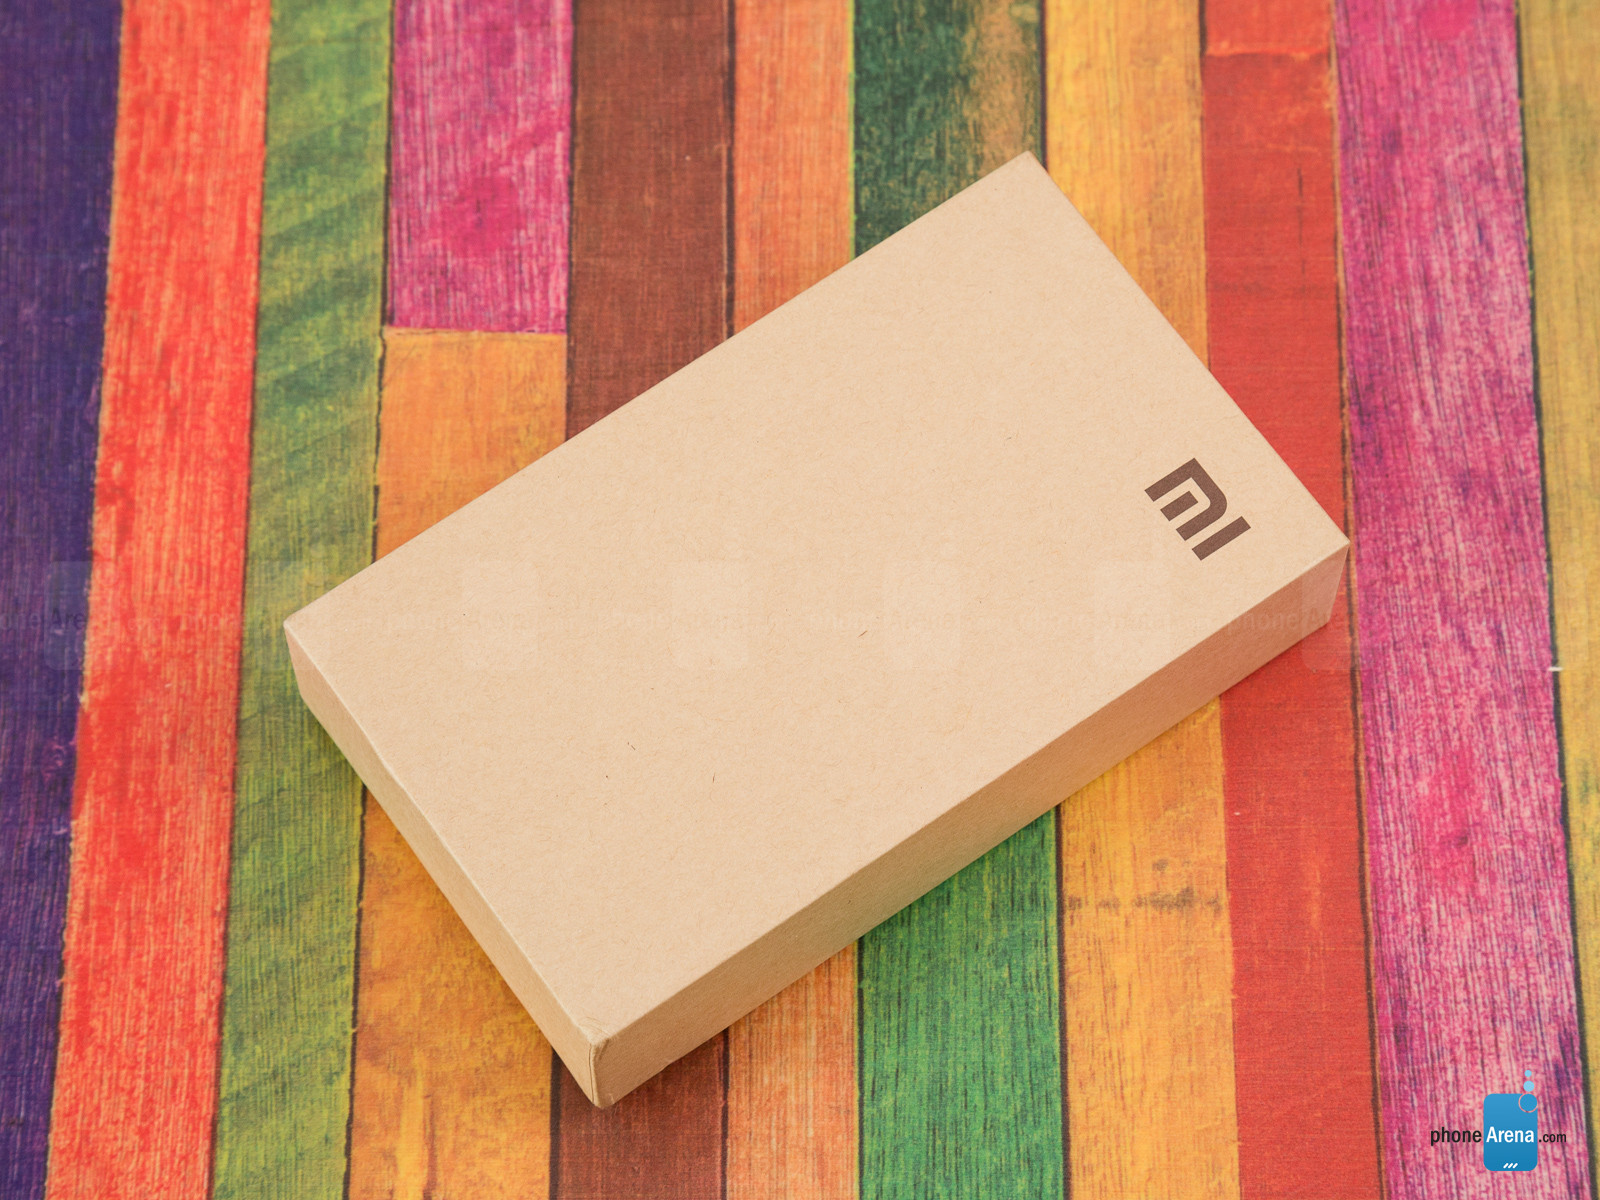 Xiaomi-Redmi-Note-2-Review-086-box